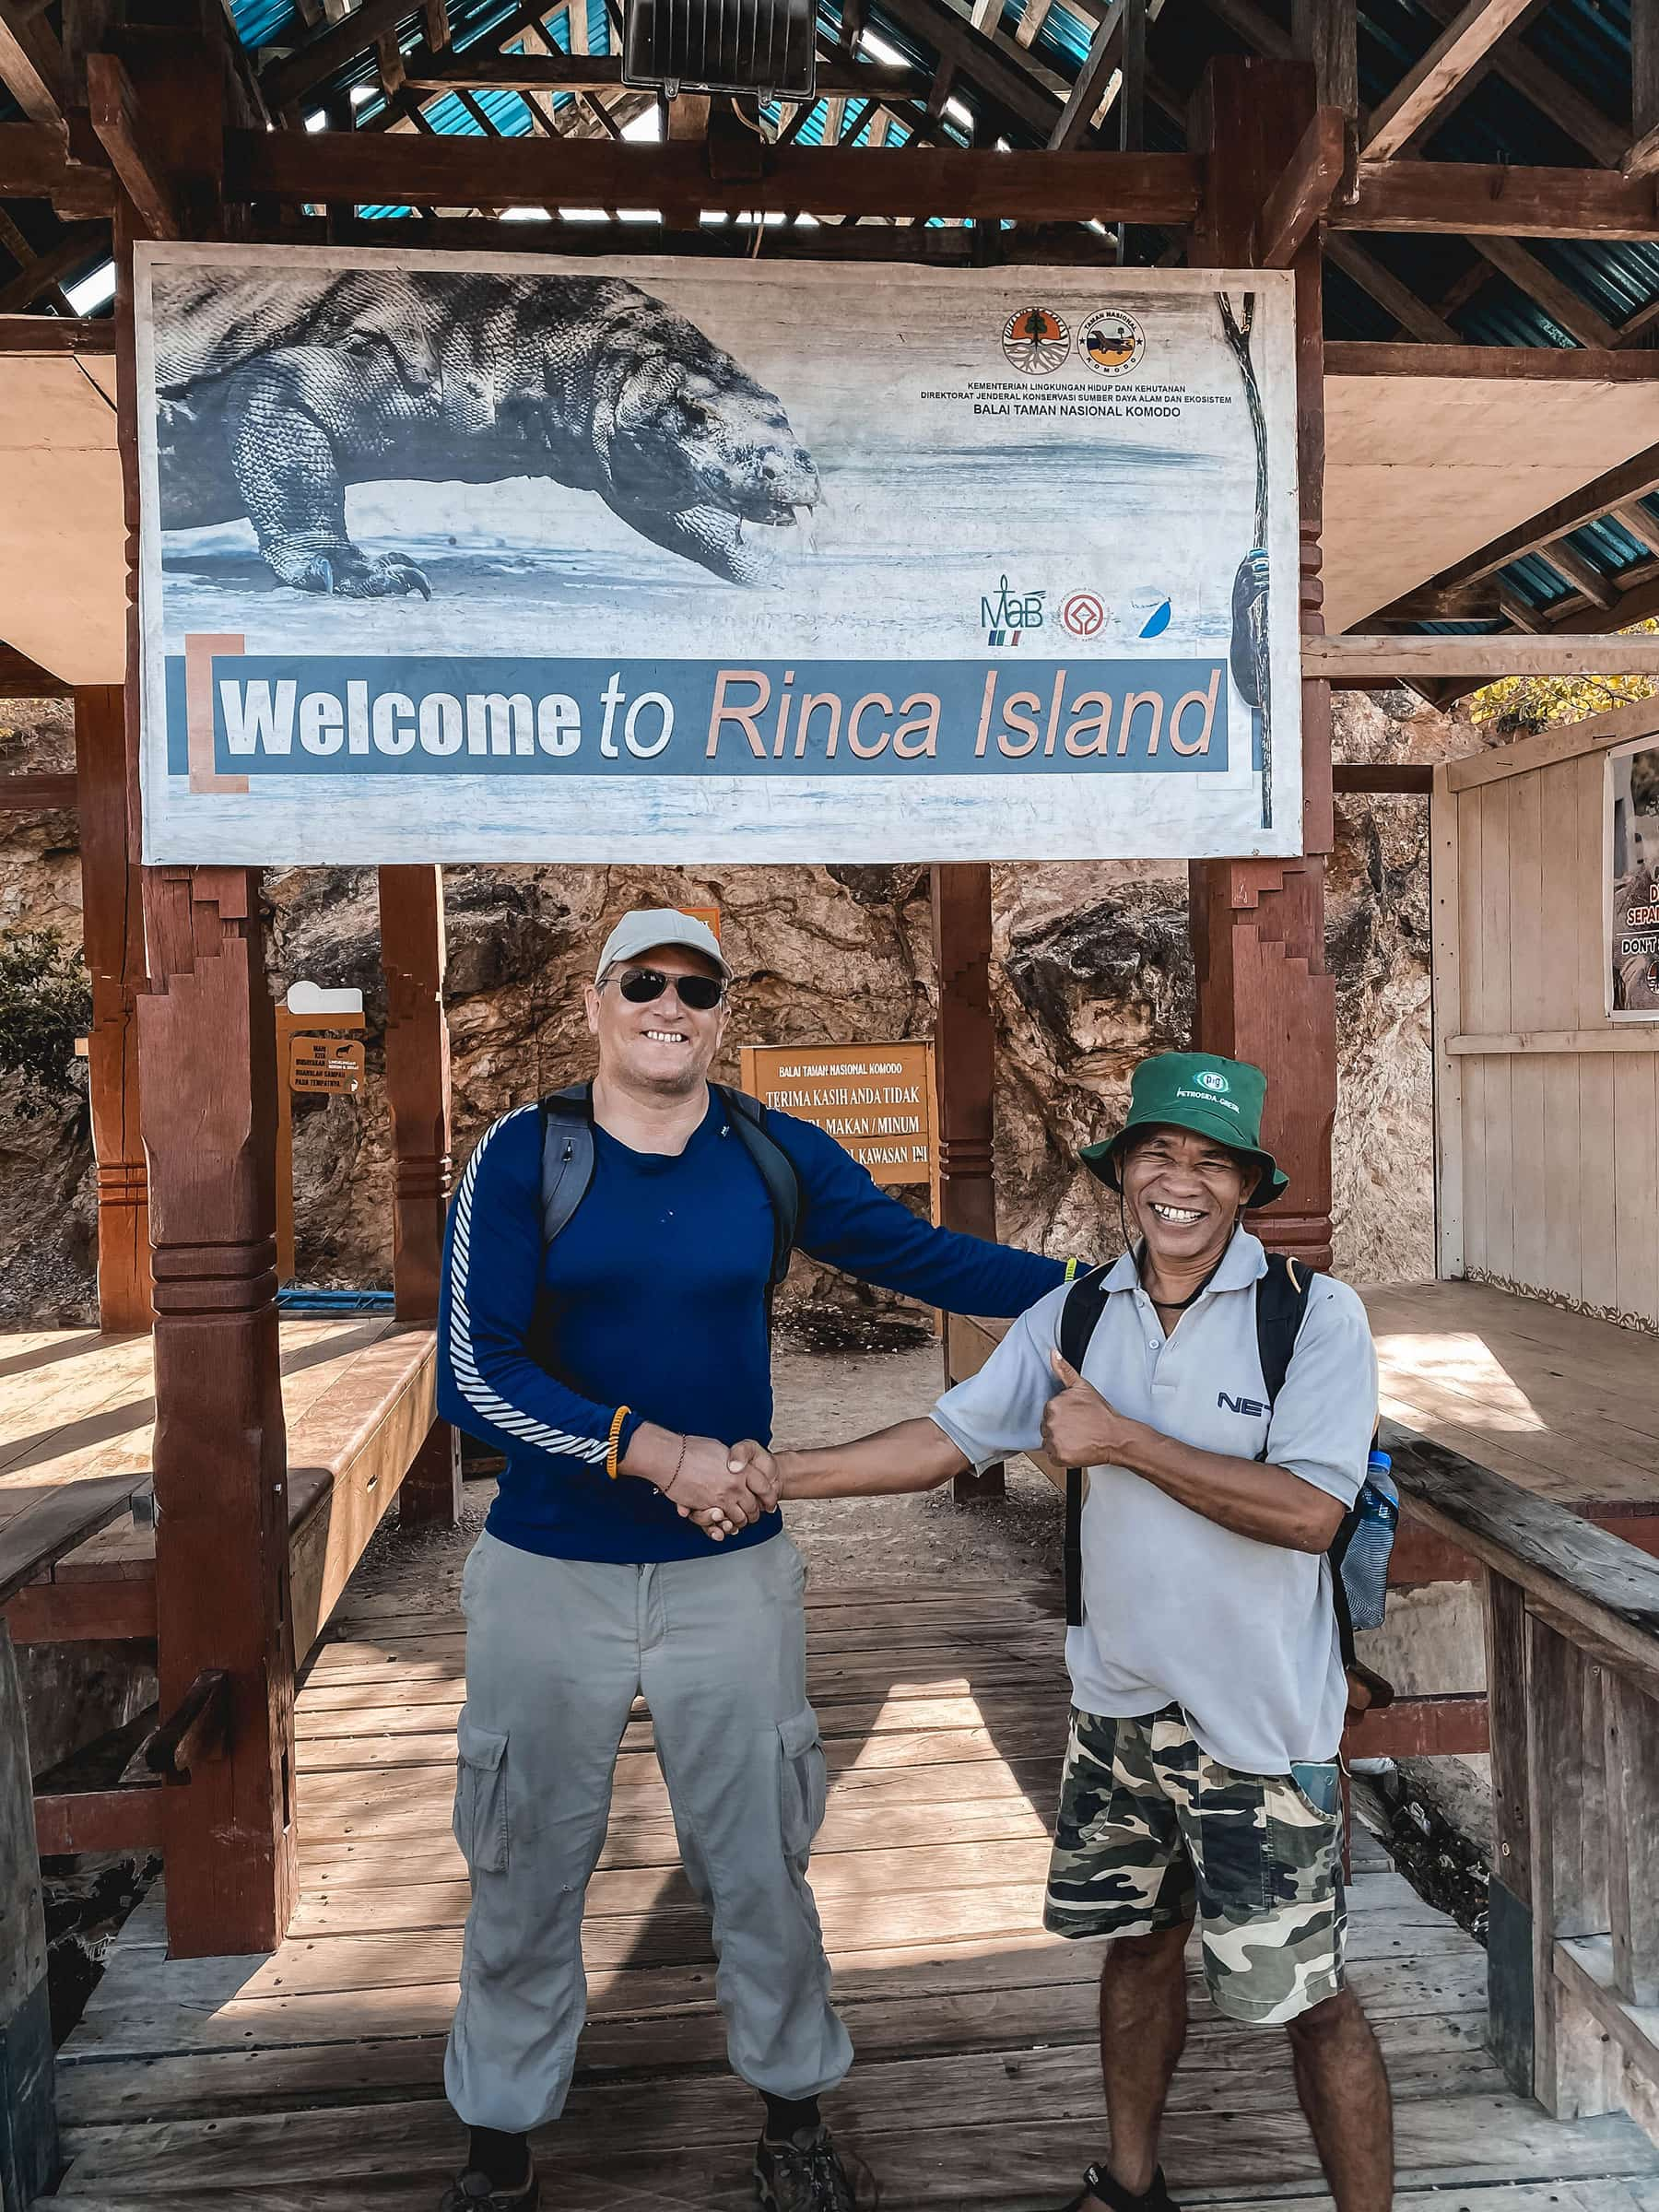 Tourist and ranger on Rinca Island in Komodo National Park, Indonesia